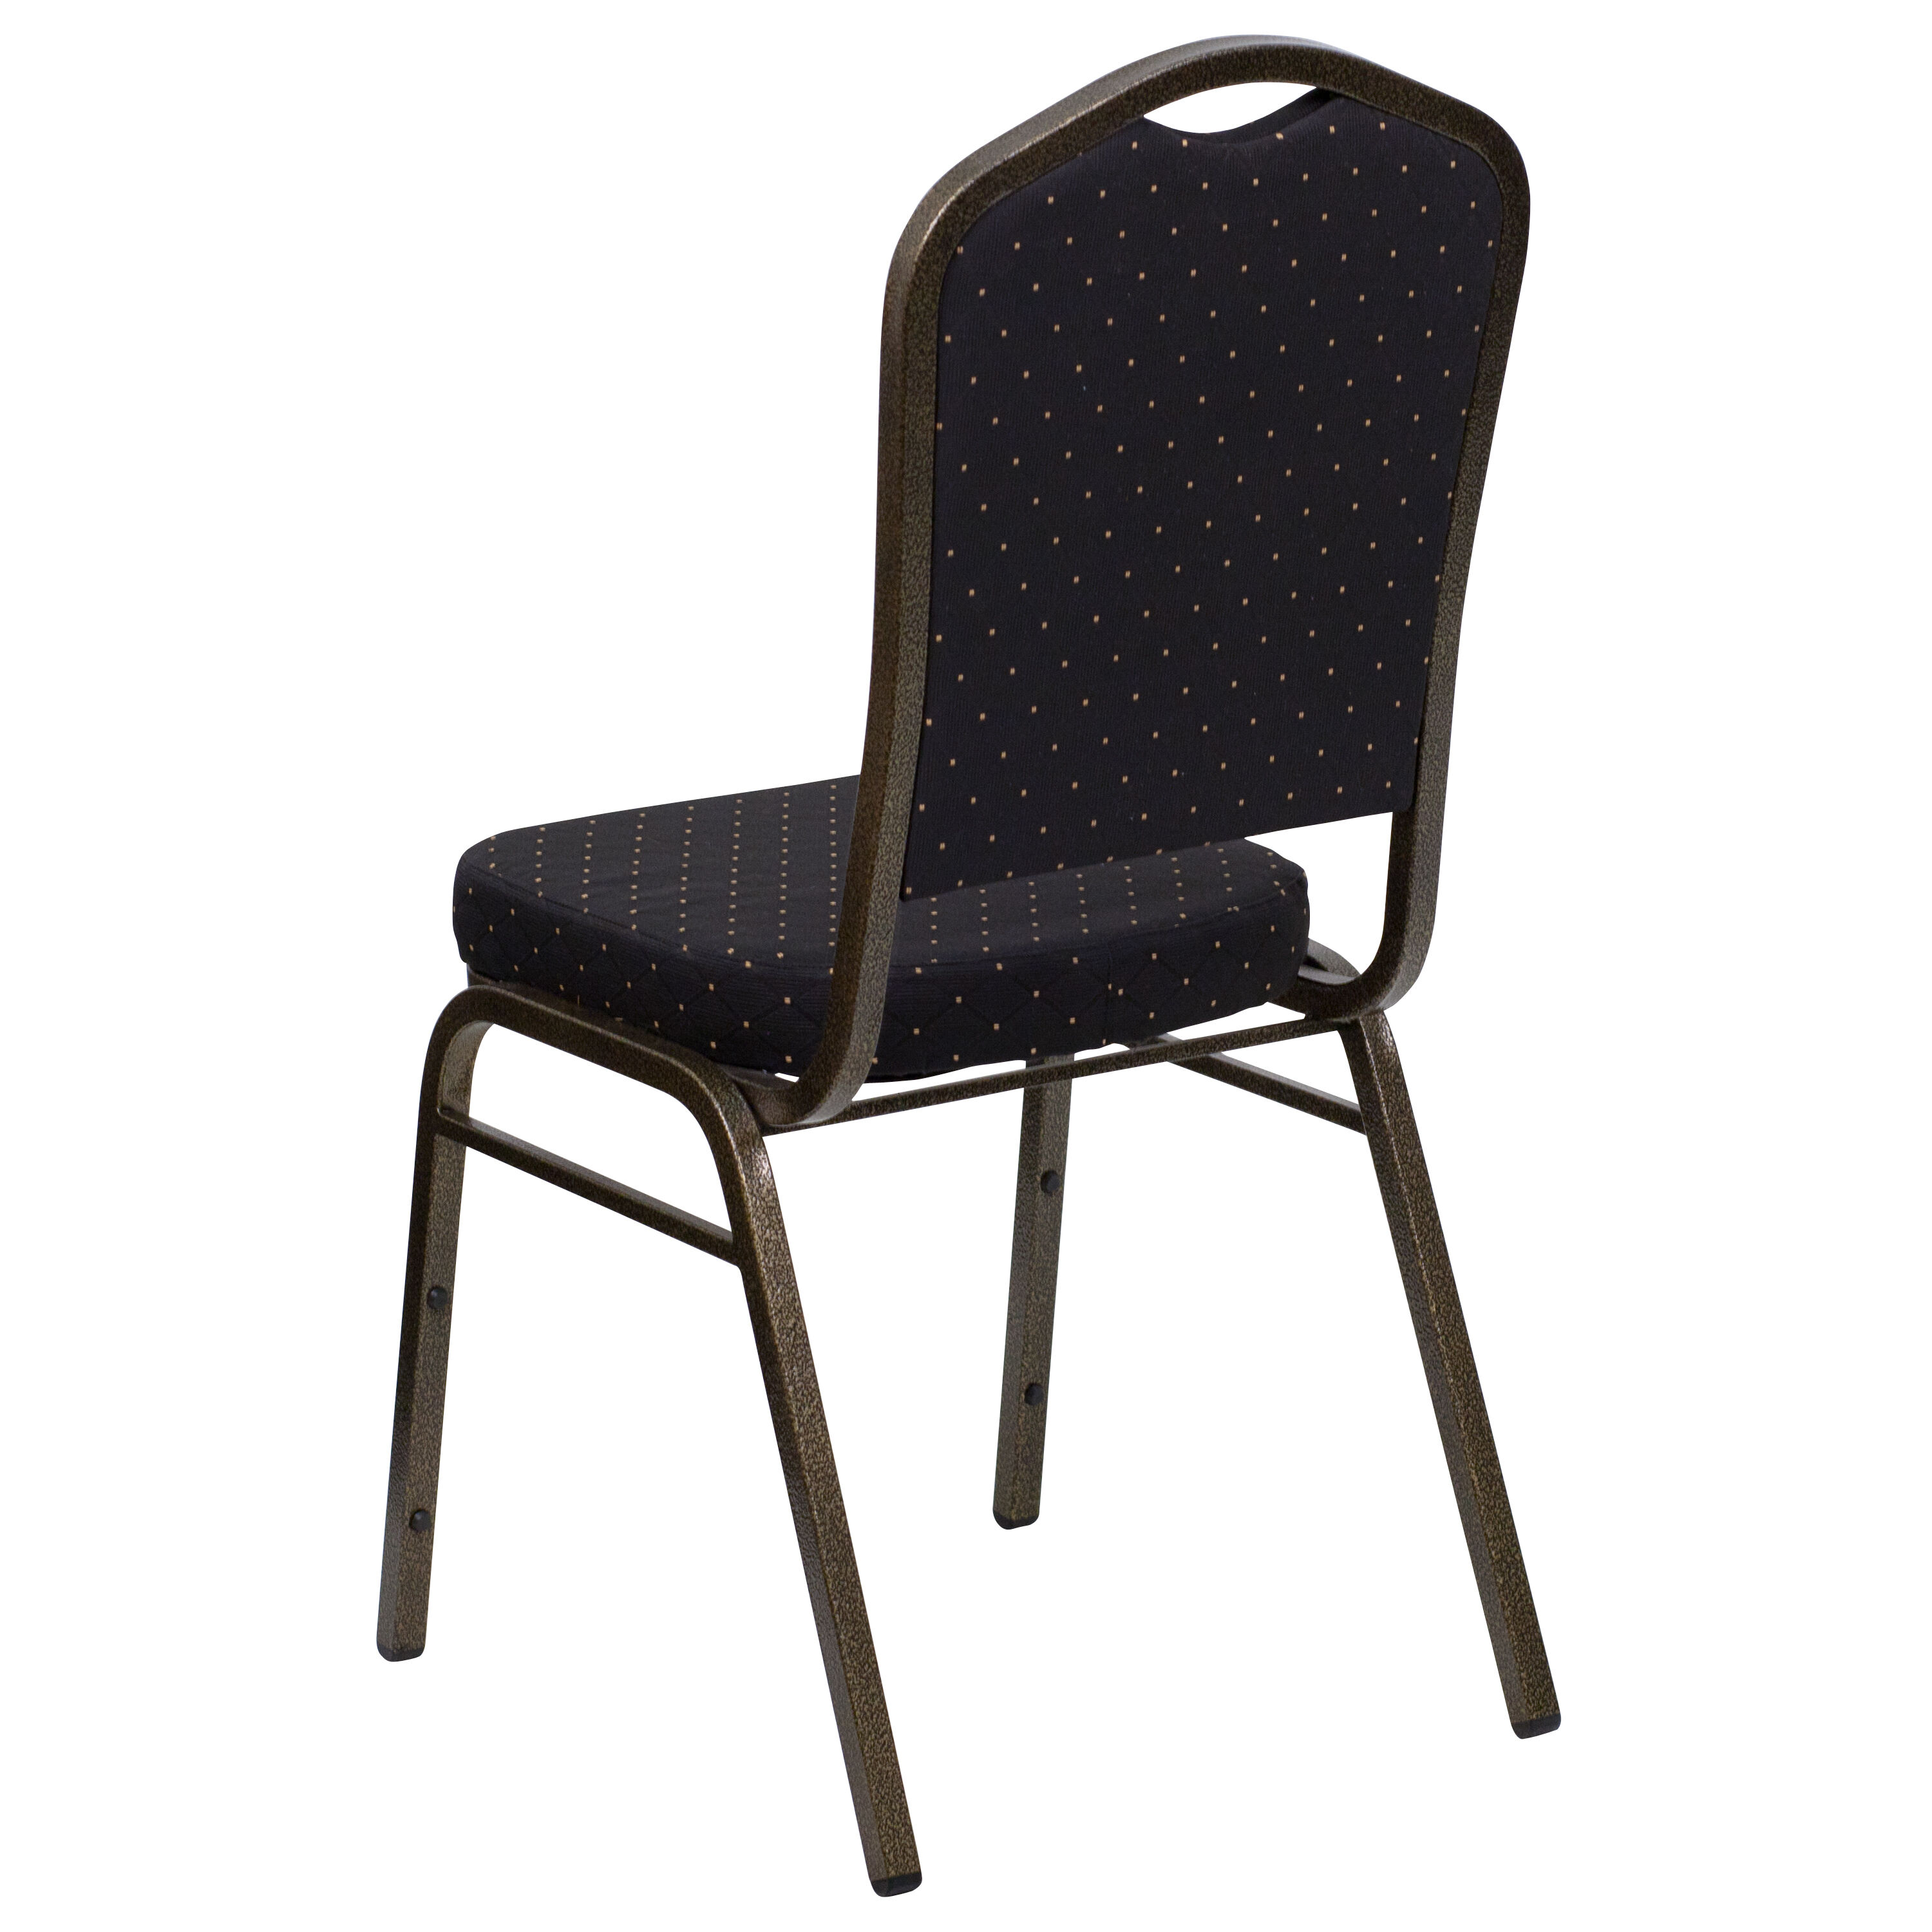 Exceptional Flash Furniture HERCULES Series Crown Back Stacking Banquet Chair In Black  Patterned Fabric   Gold Vein Frame FD C01 GOLDVEIN S0806 GG |  StackChairs4Less. ...